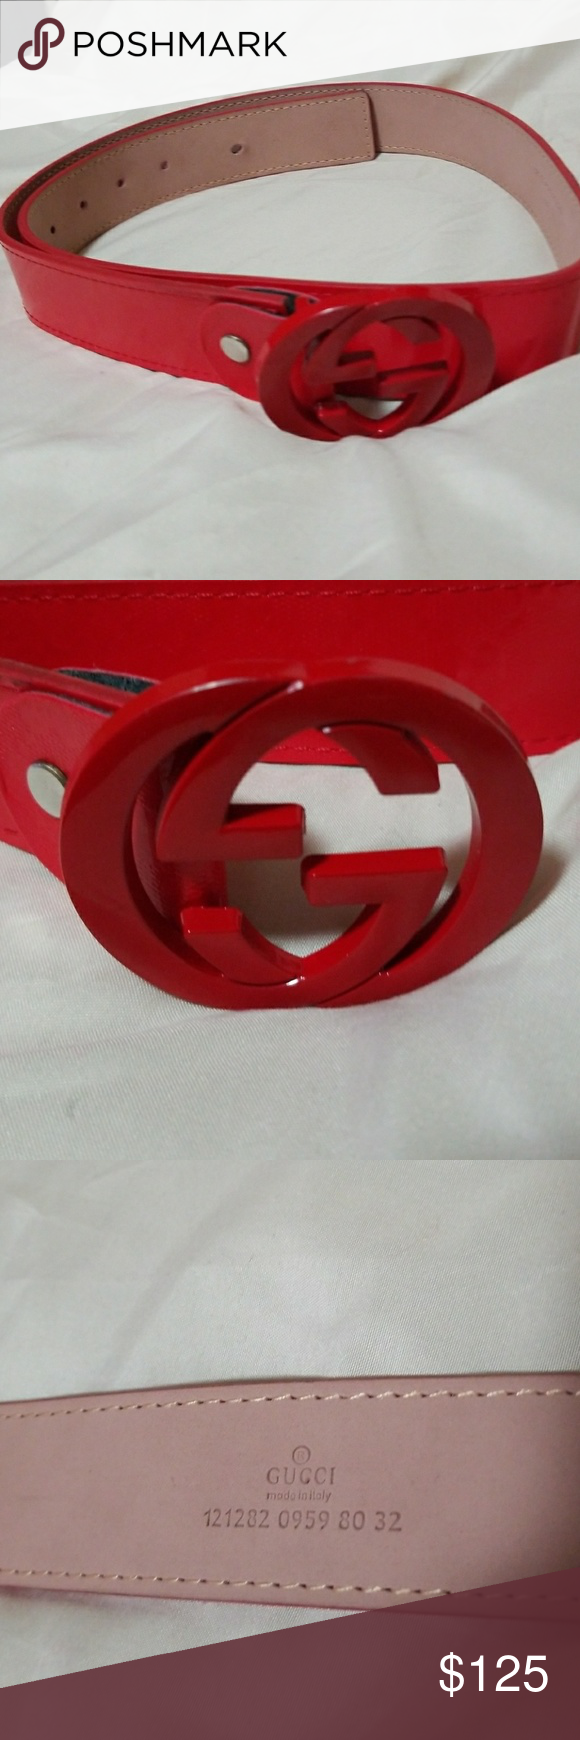 f2da77073 Authemtic Gucci belt Pre owned Gucci Belt like new No sing of wear Red  color Serial Number 12128209598032 Ship right away Thank you Gucci  Accessories Belts